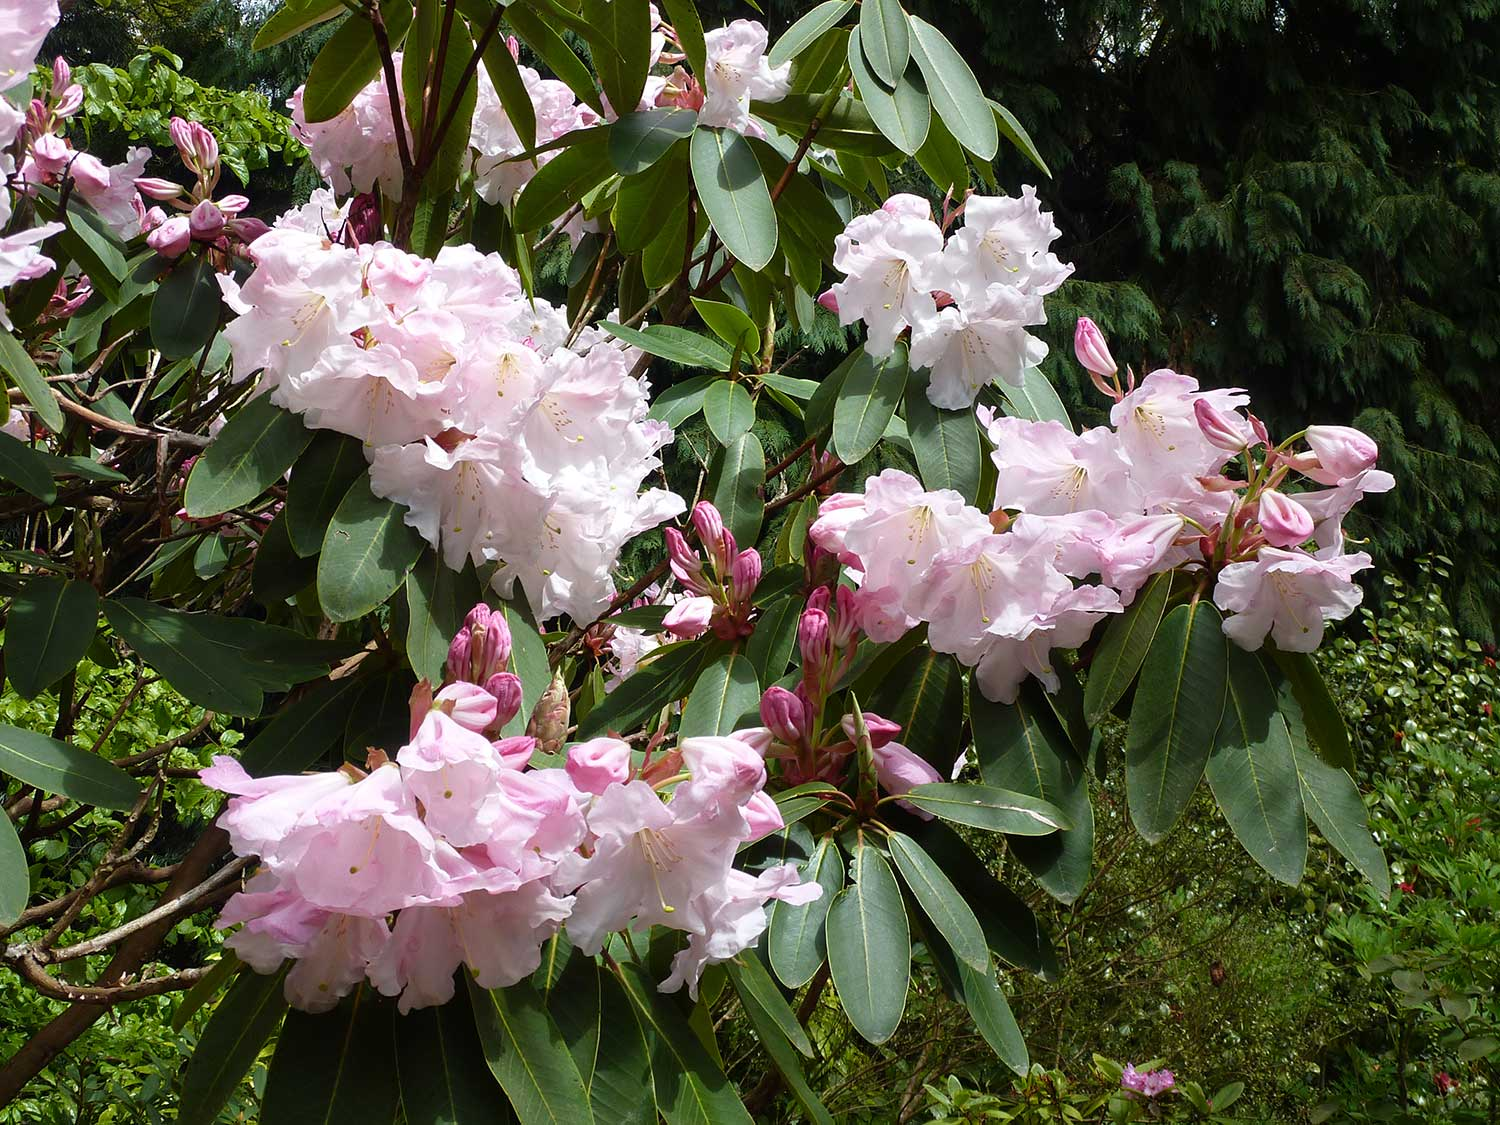 Rhododendron-loderi-'King-George'-(2)